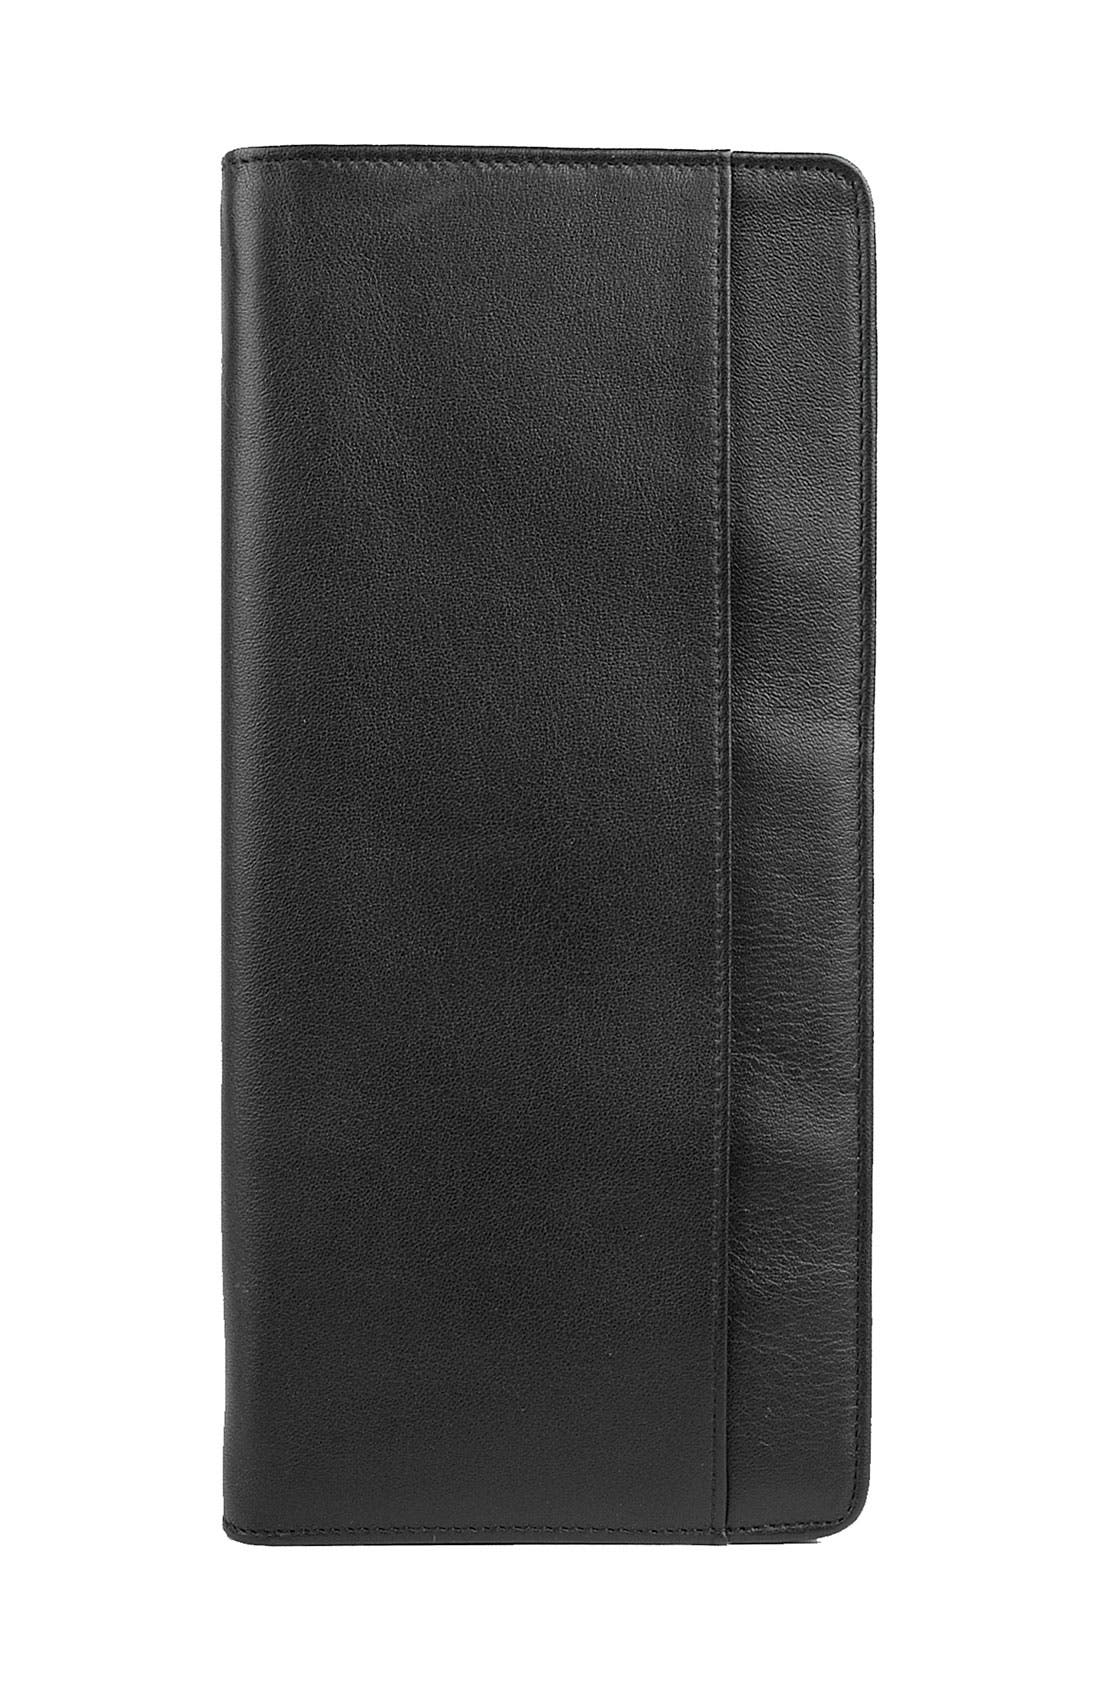 BOSCA Flight Attendant Travel Wallet